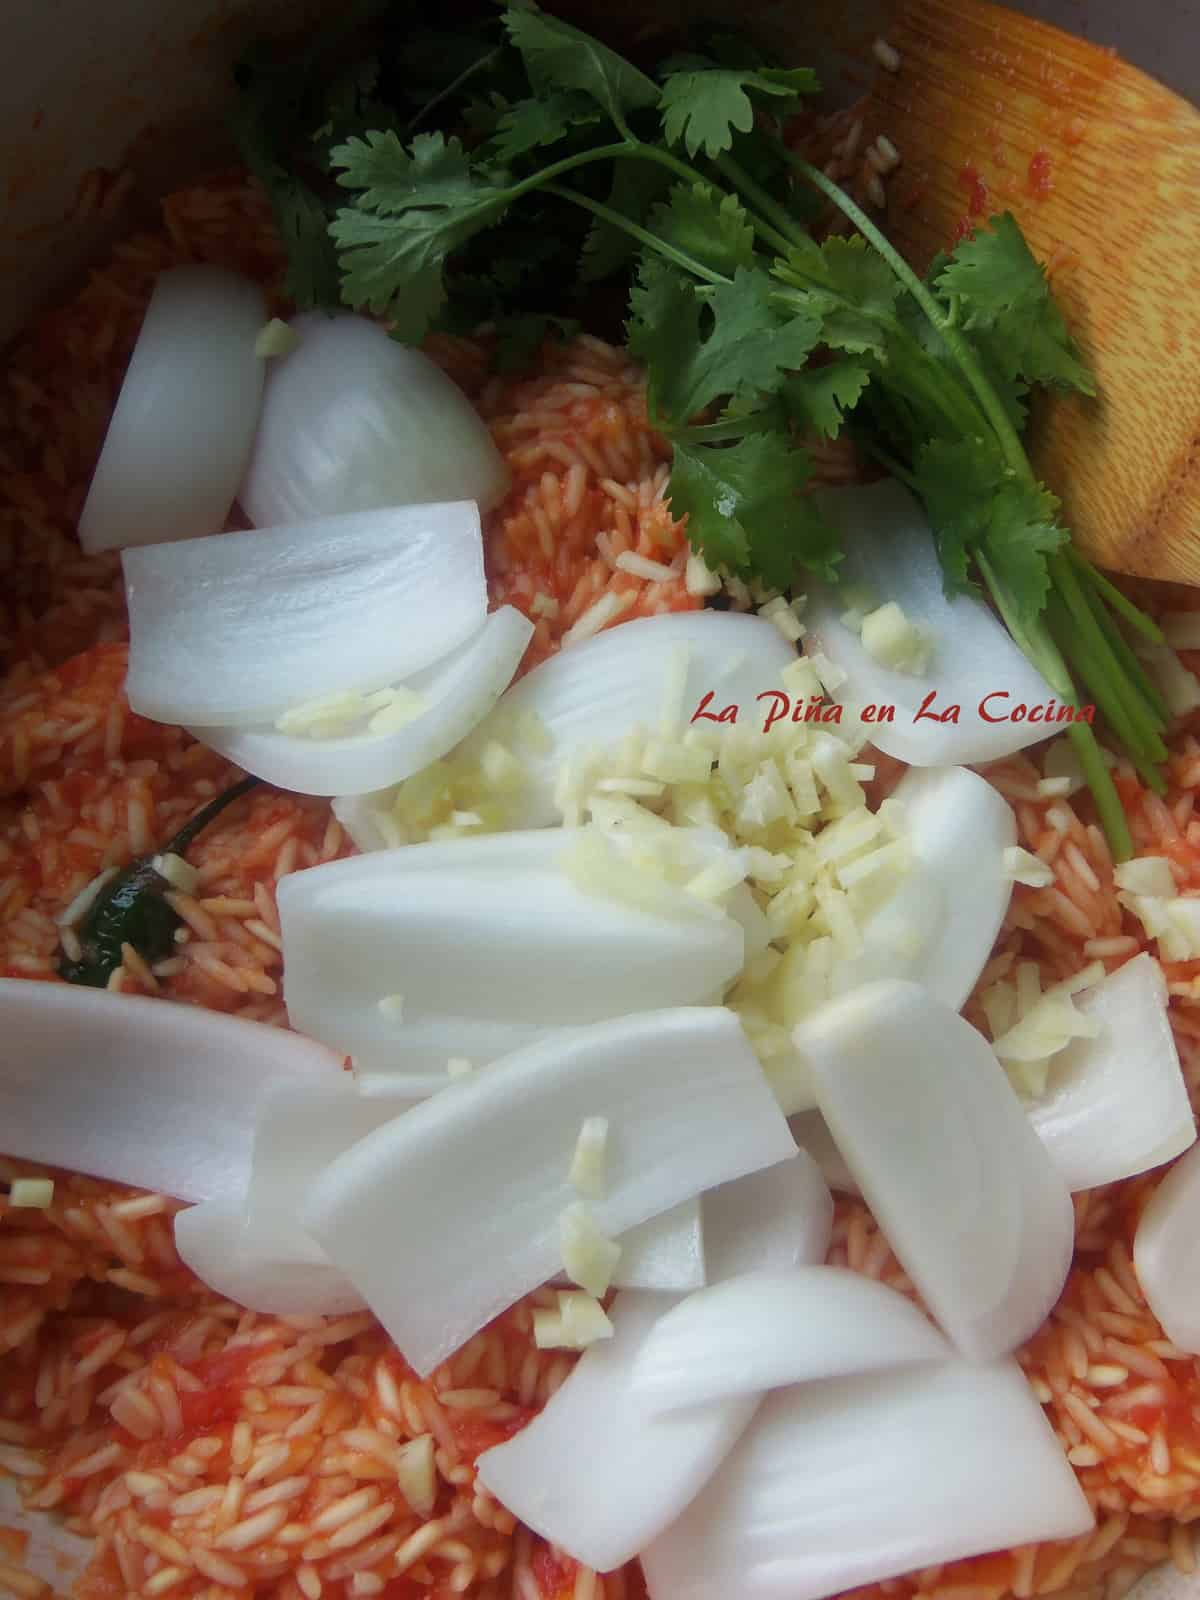 If you choose to leave the onion pieces larger, just add them in with the cilantro and garlic before adding the liquid to the rice.